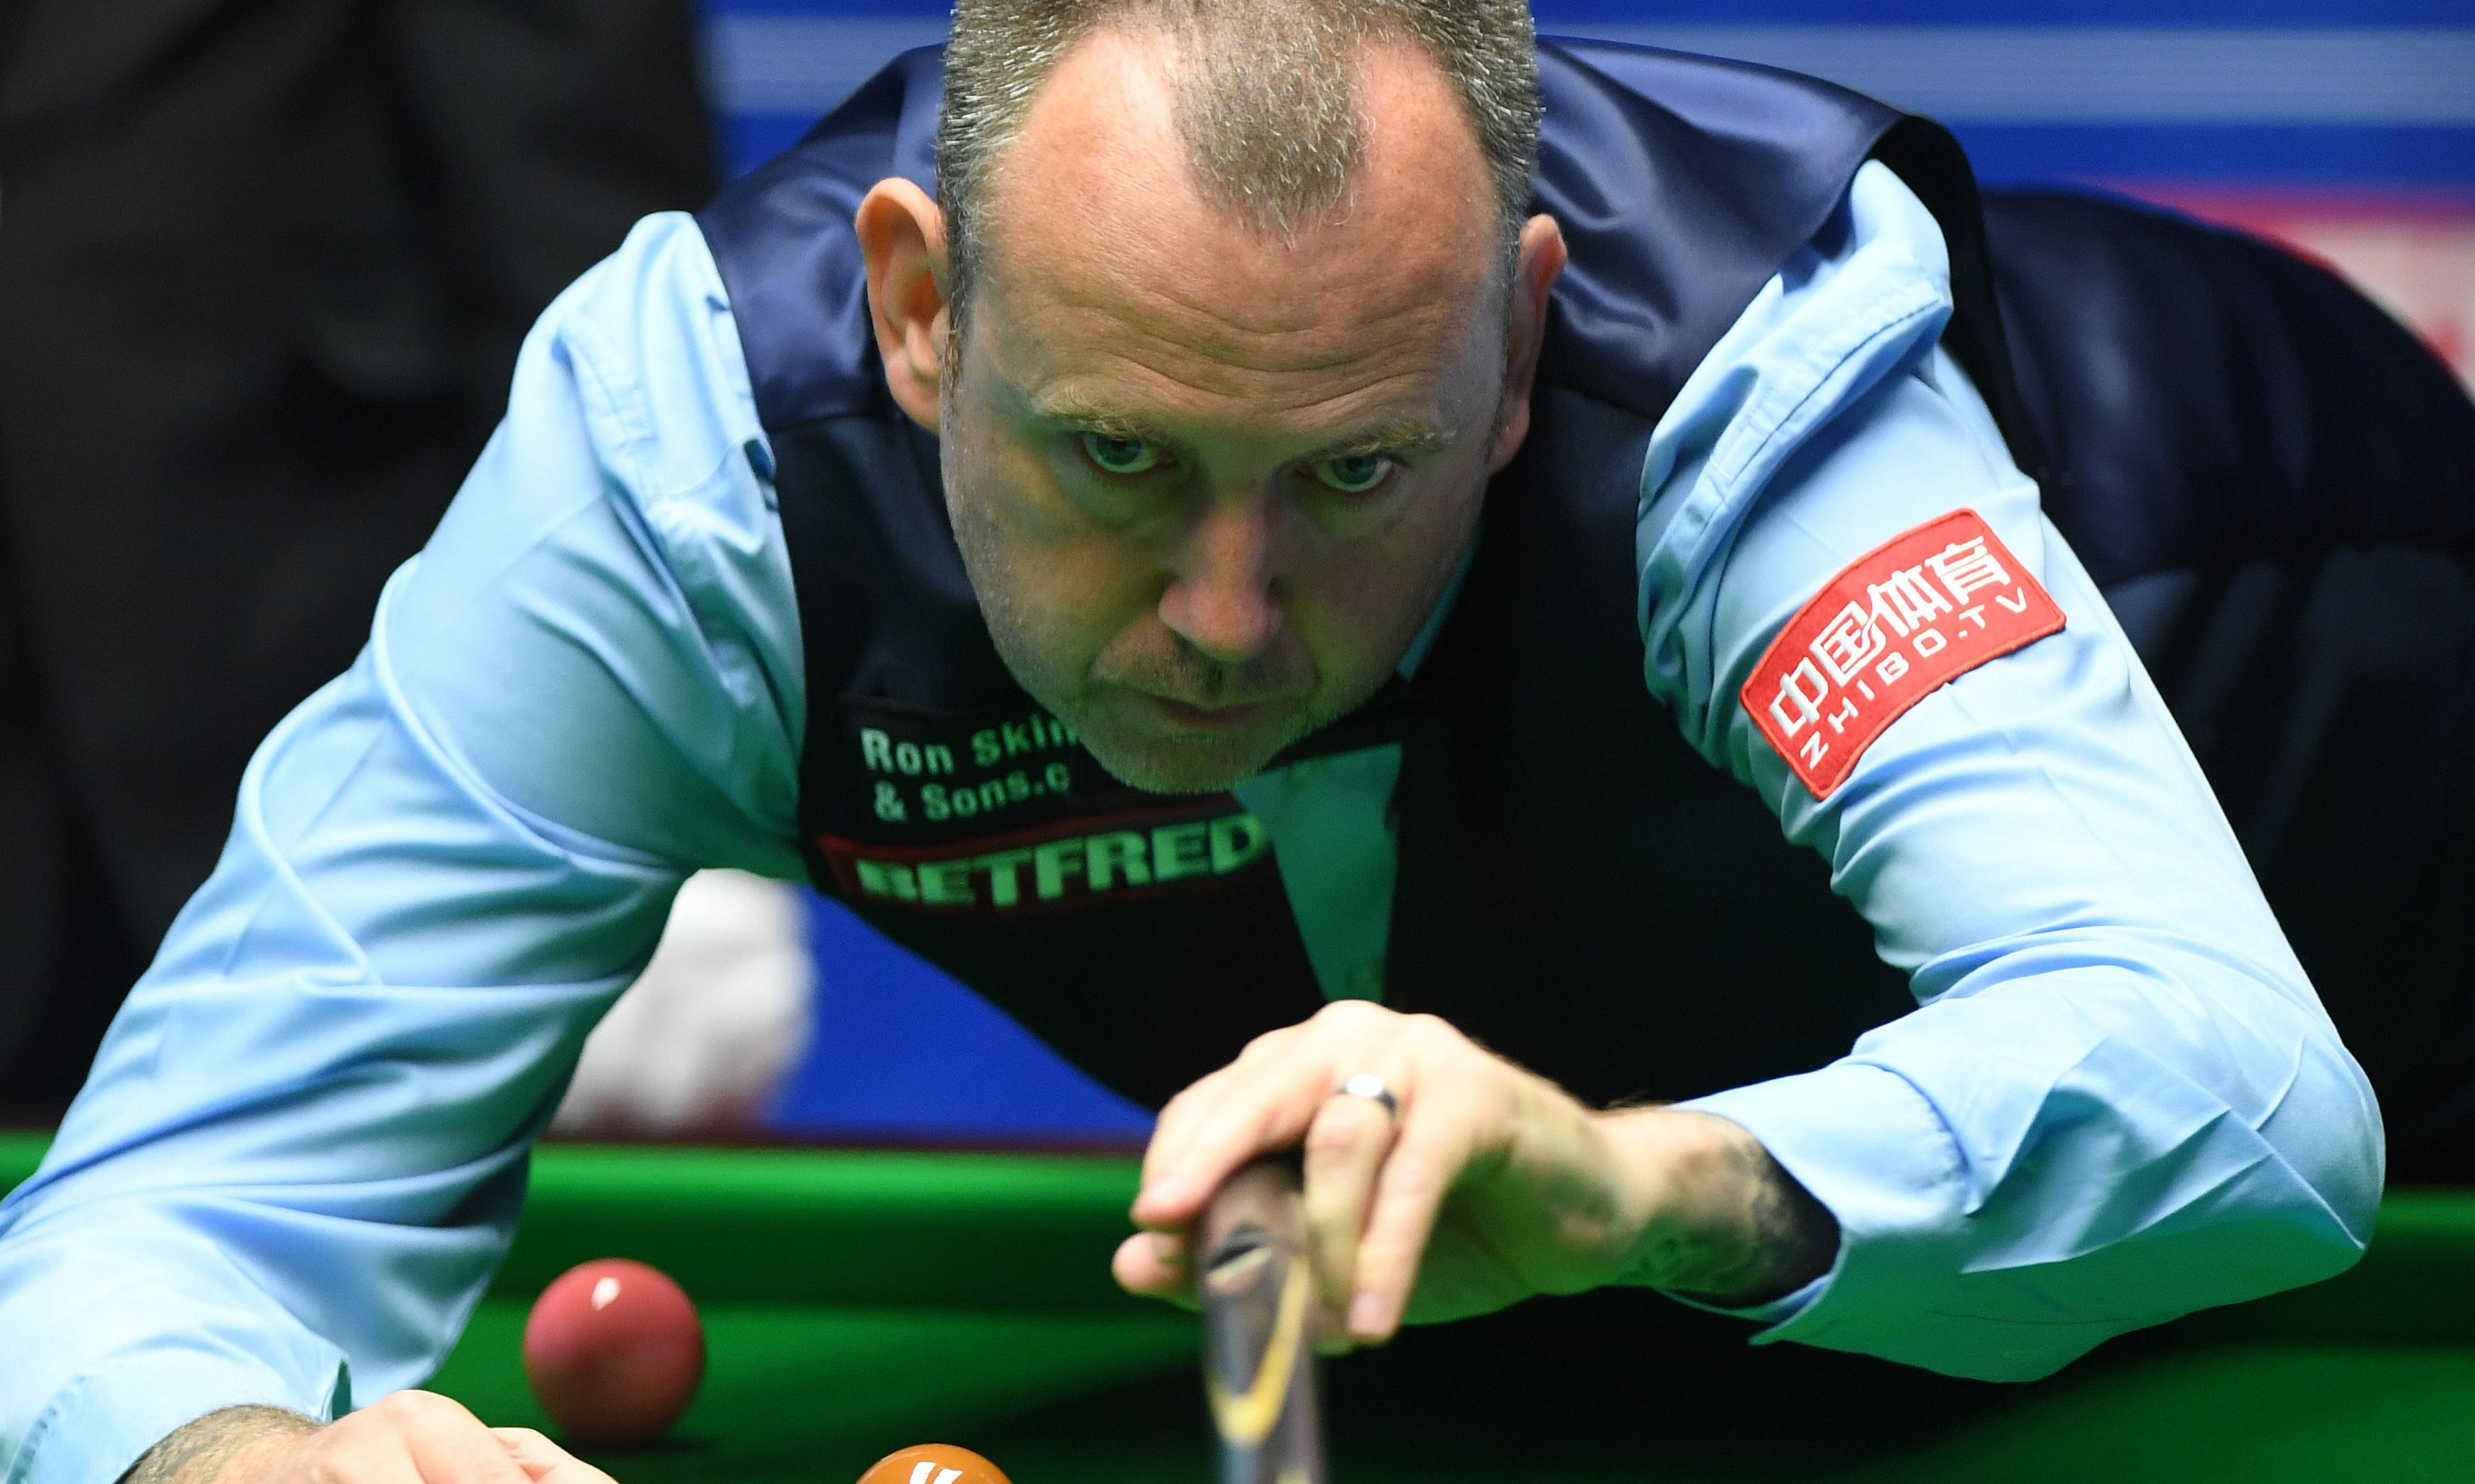 Mark Williams hits out at officials after World Championship win